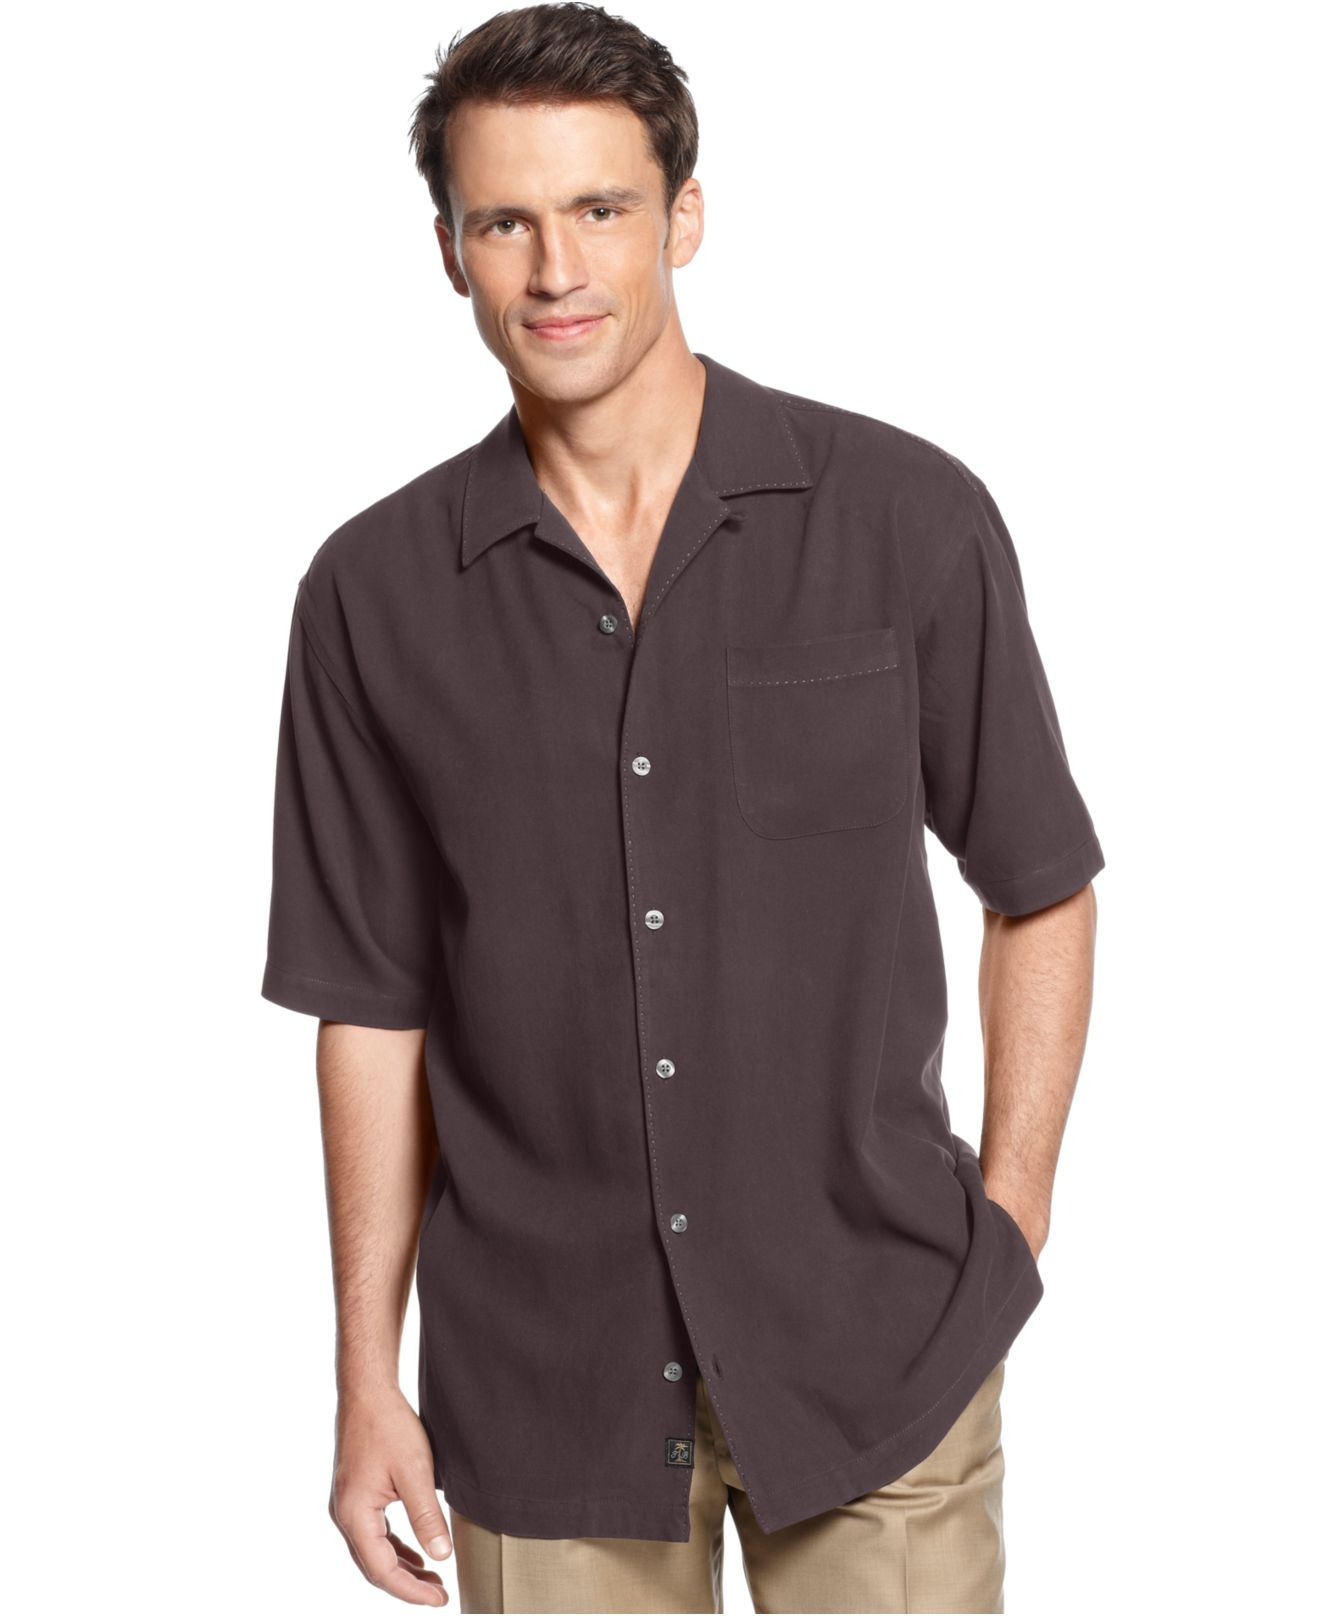 Tommy Bahama Catalina Silk Shirt In Brown For Men Lyst